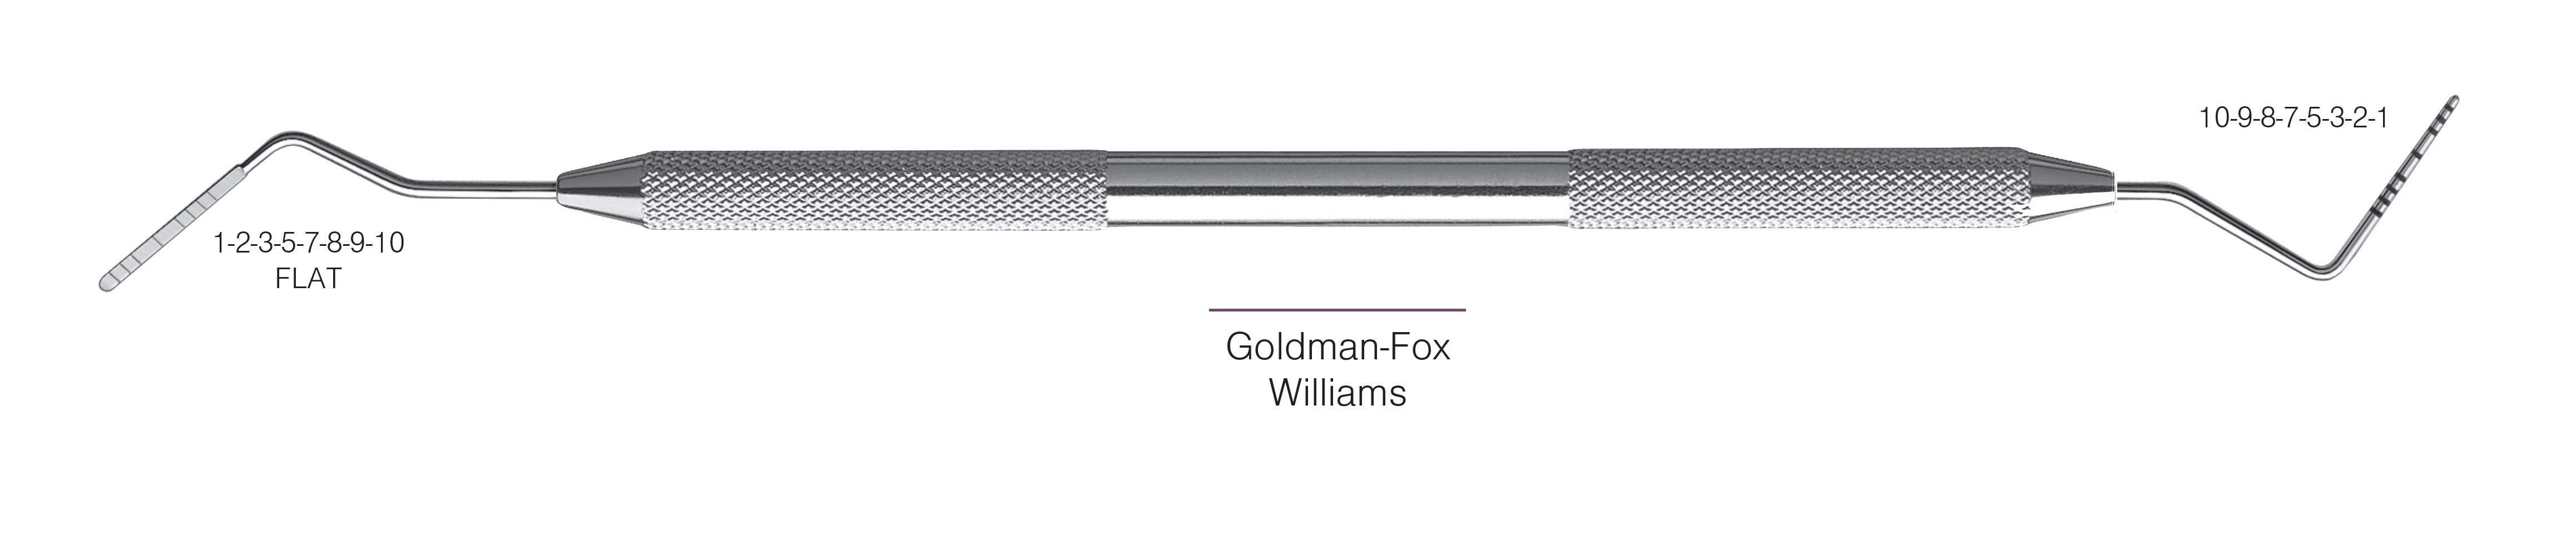 HF-PGF-W6-31, PROBES DOUBLE-ENDED Goldman-Fox/Williams, Black markings, 1-2-3-5-7-8-9-10 mm FLAT & 10-9-8-7-5-3-2-1 mm, Handle round, Double Ended